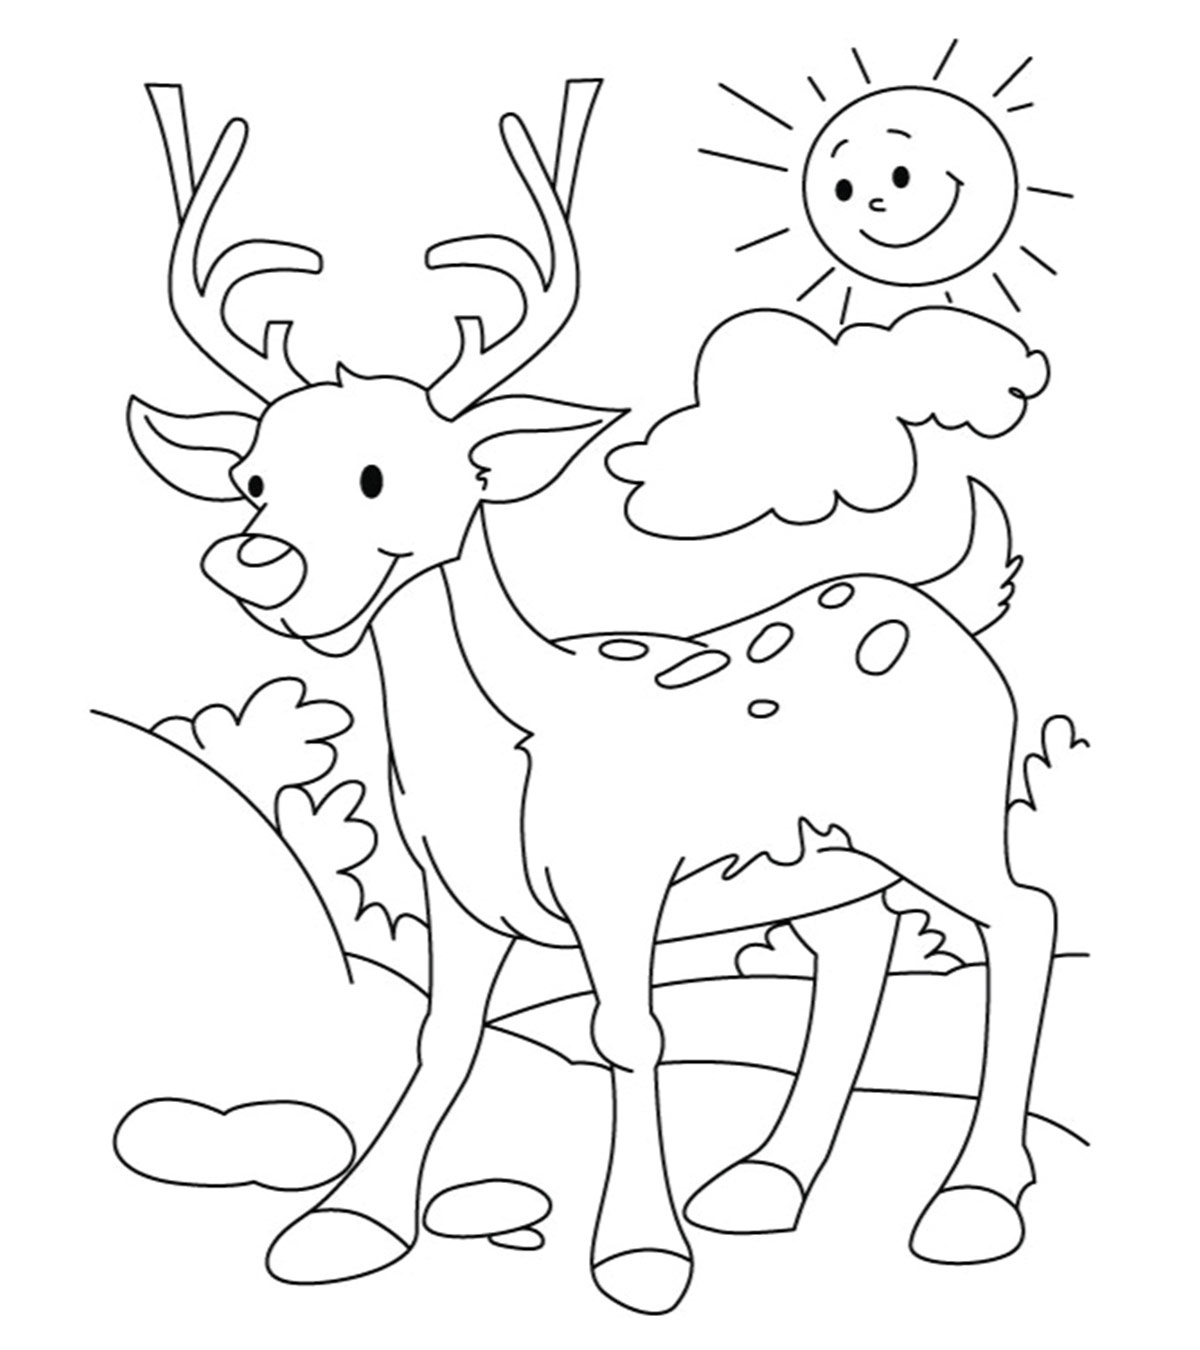 Deer Coloring Pages Top 20 Deer Coloring Pages For Your Little Ones